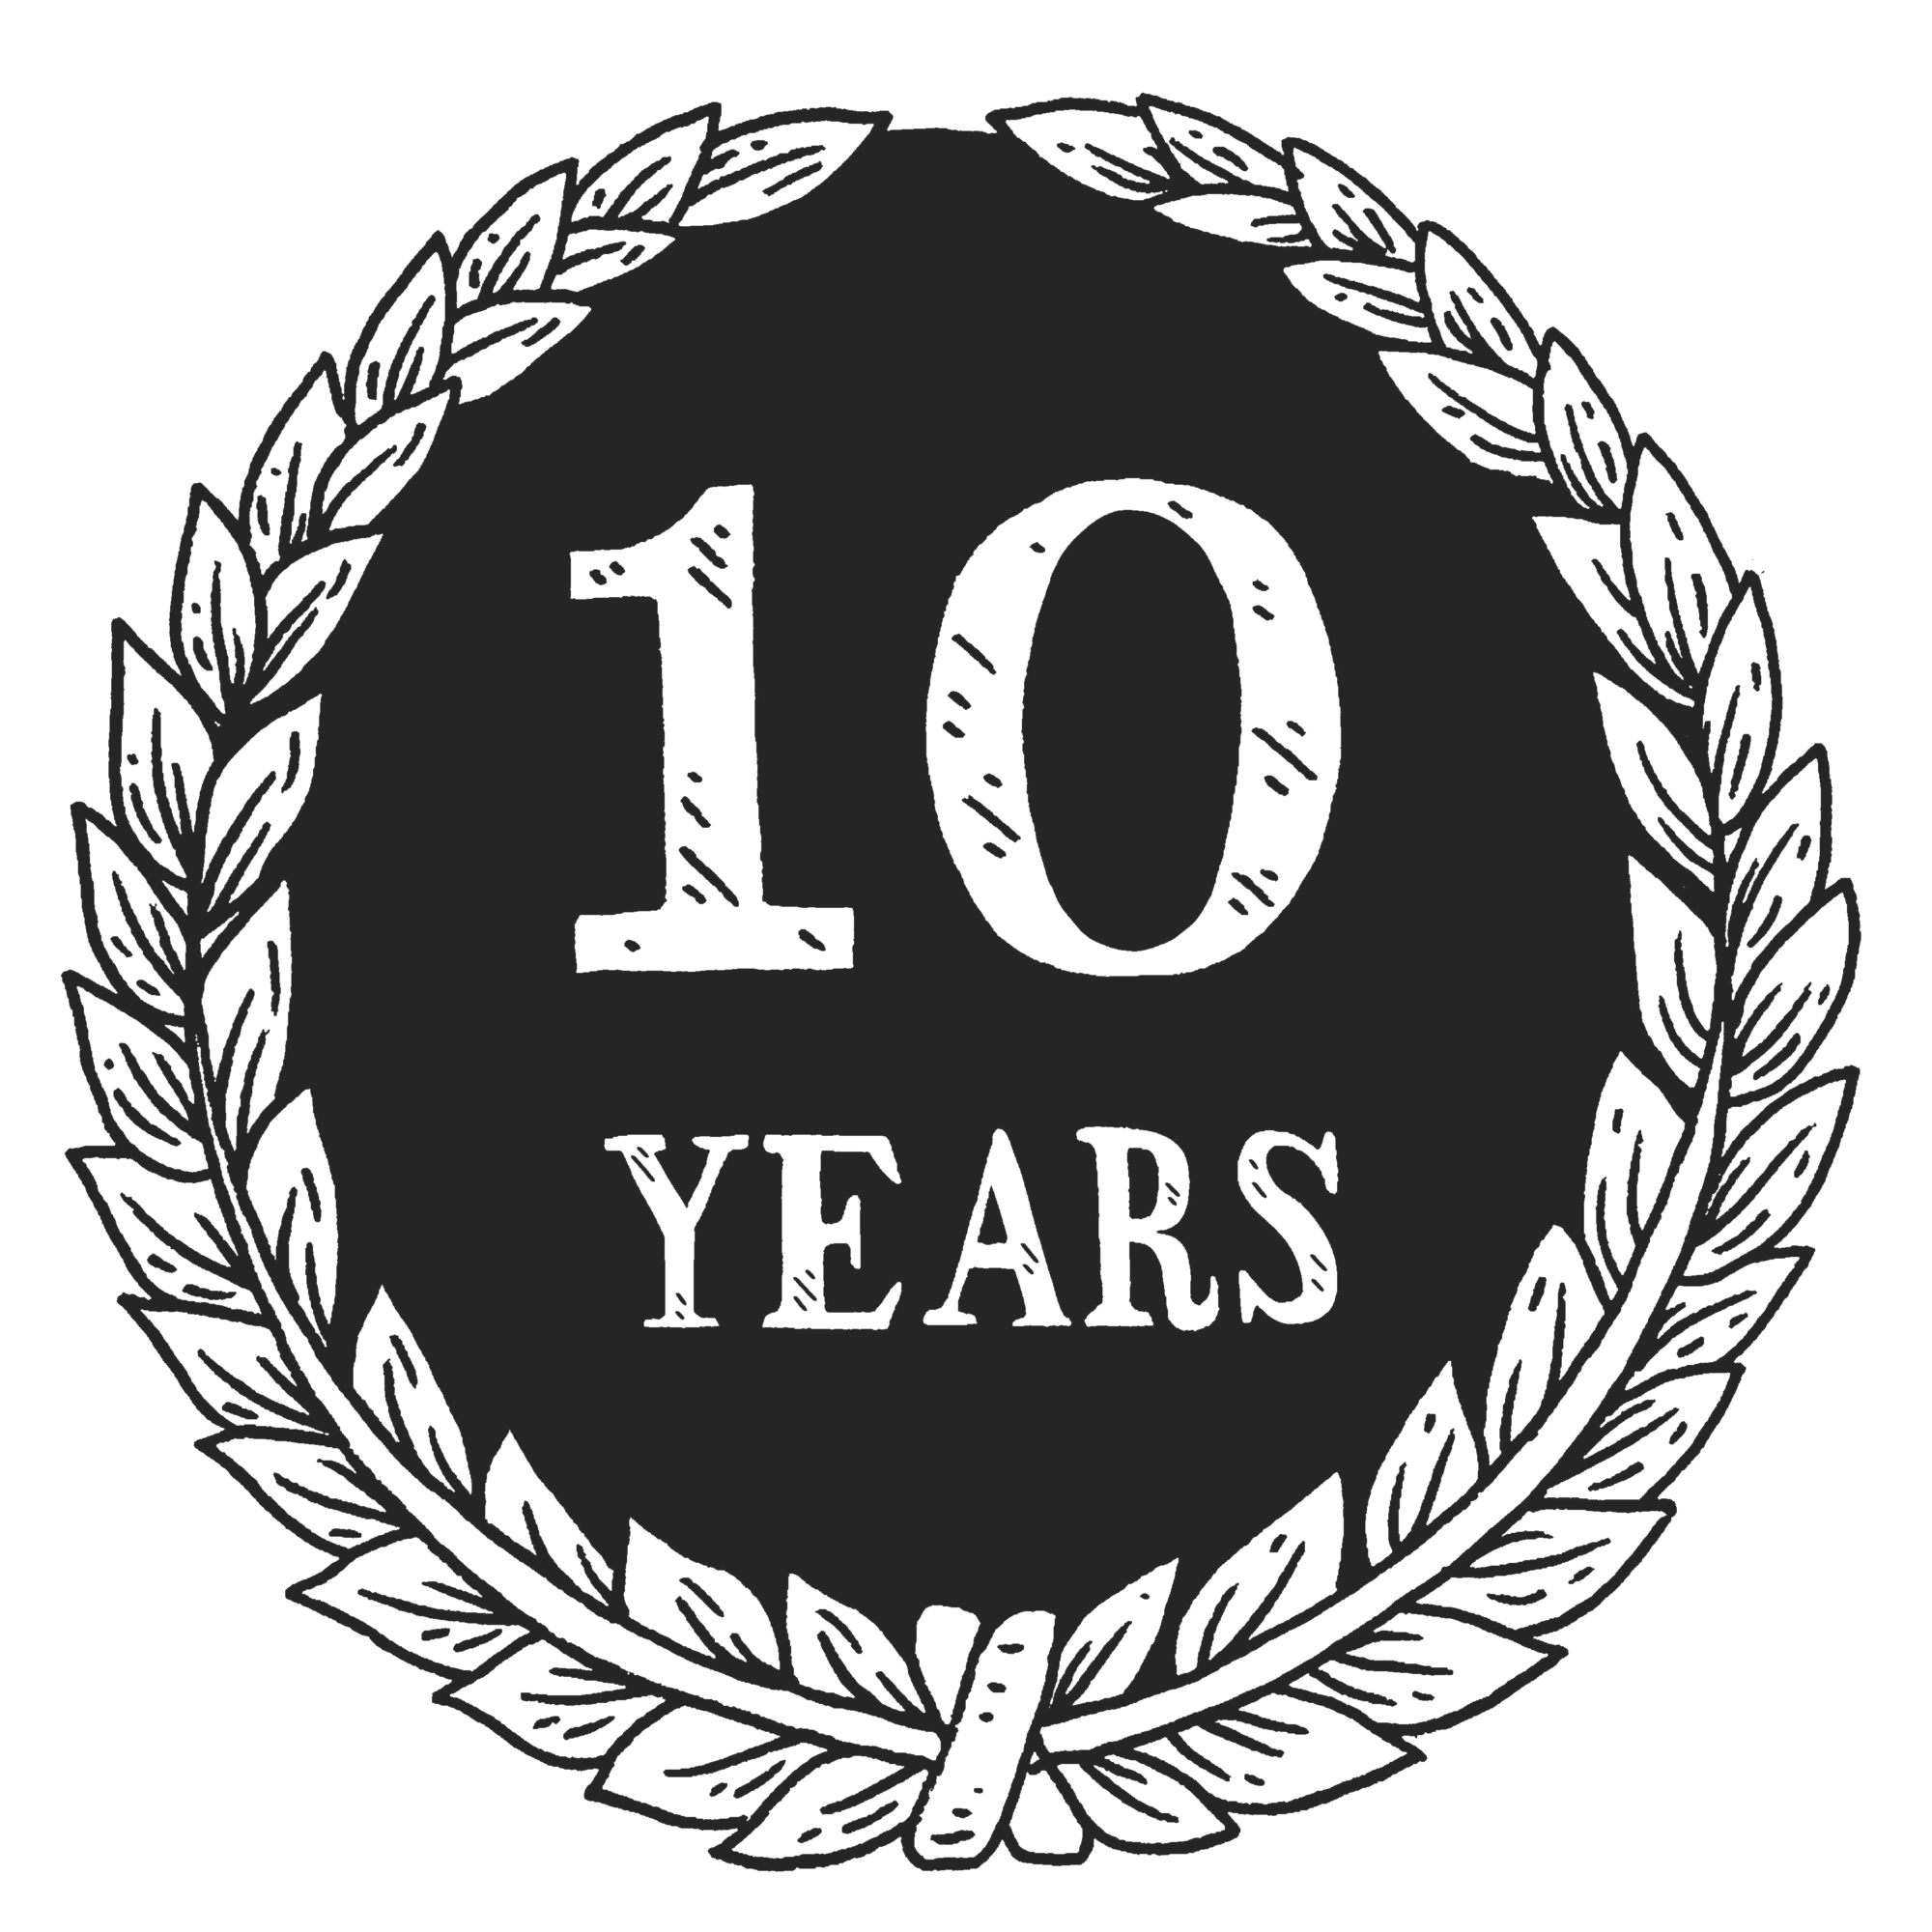 10-Years-With-Wreath